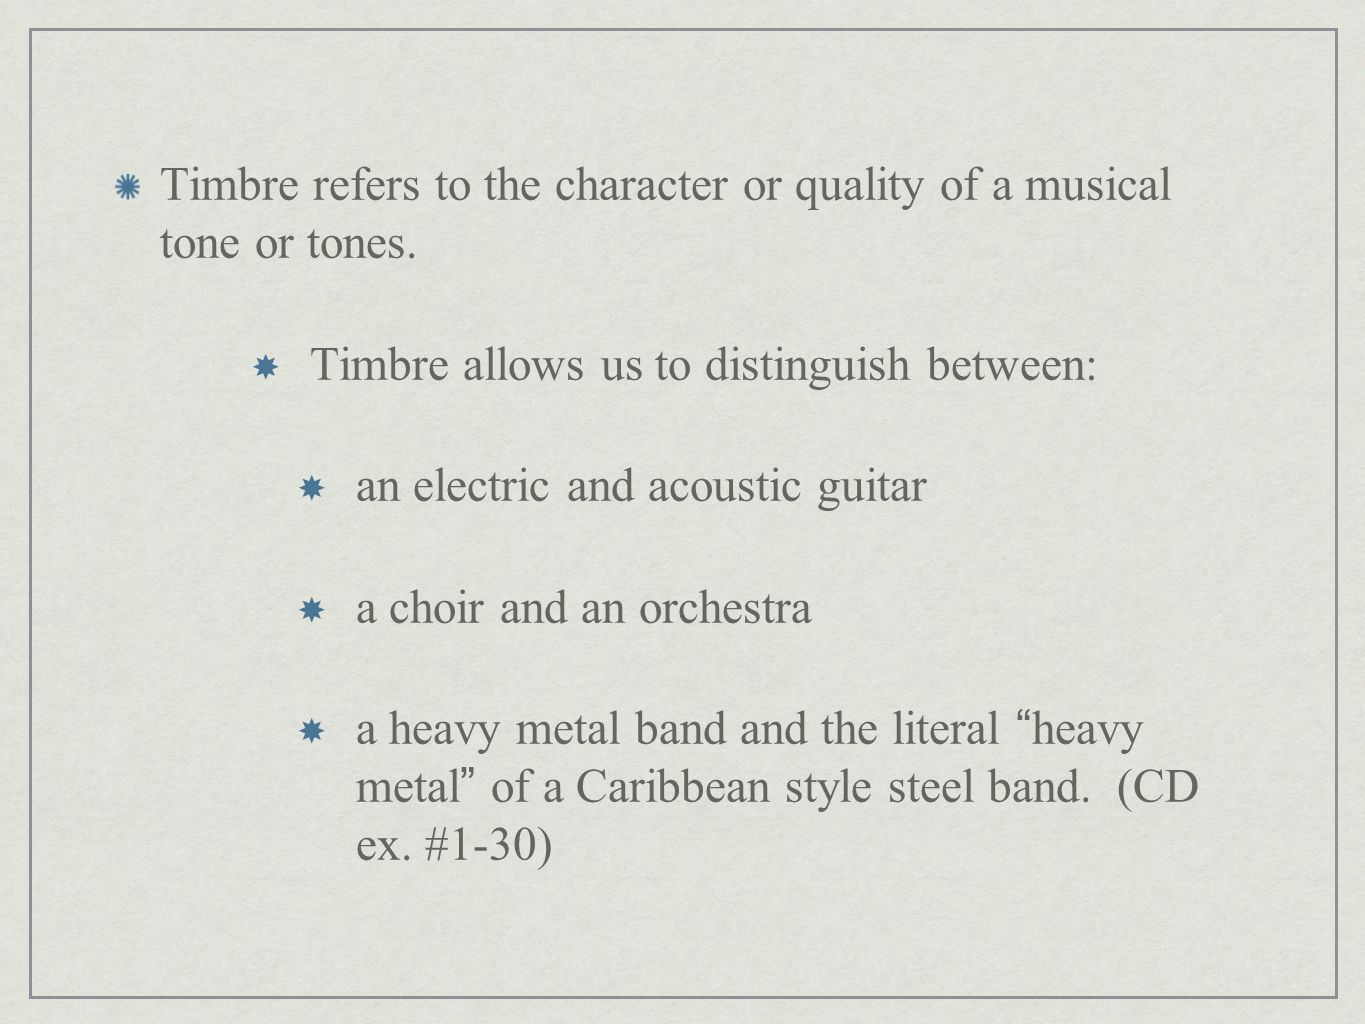 Timbre refers to the character or quality of a musical tone or tones.